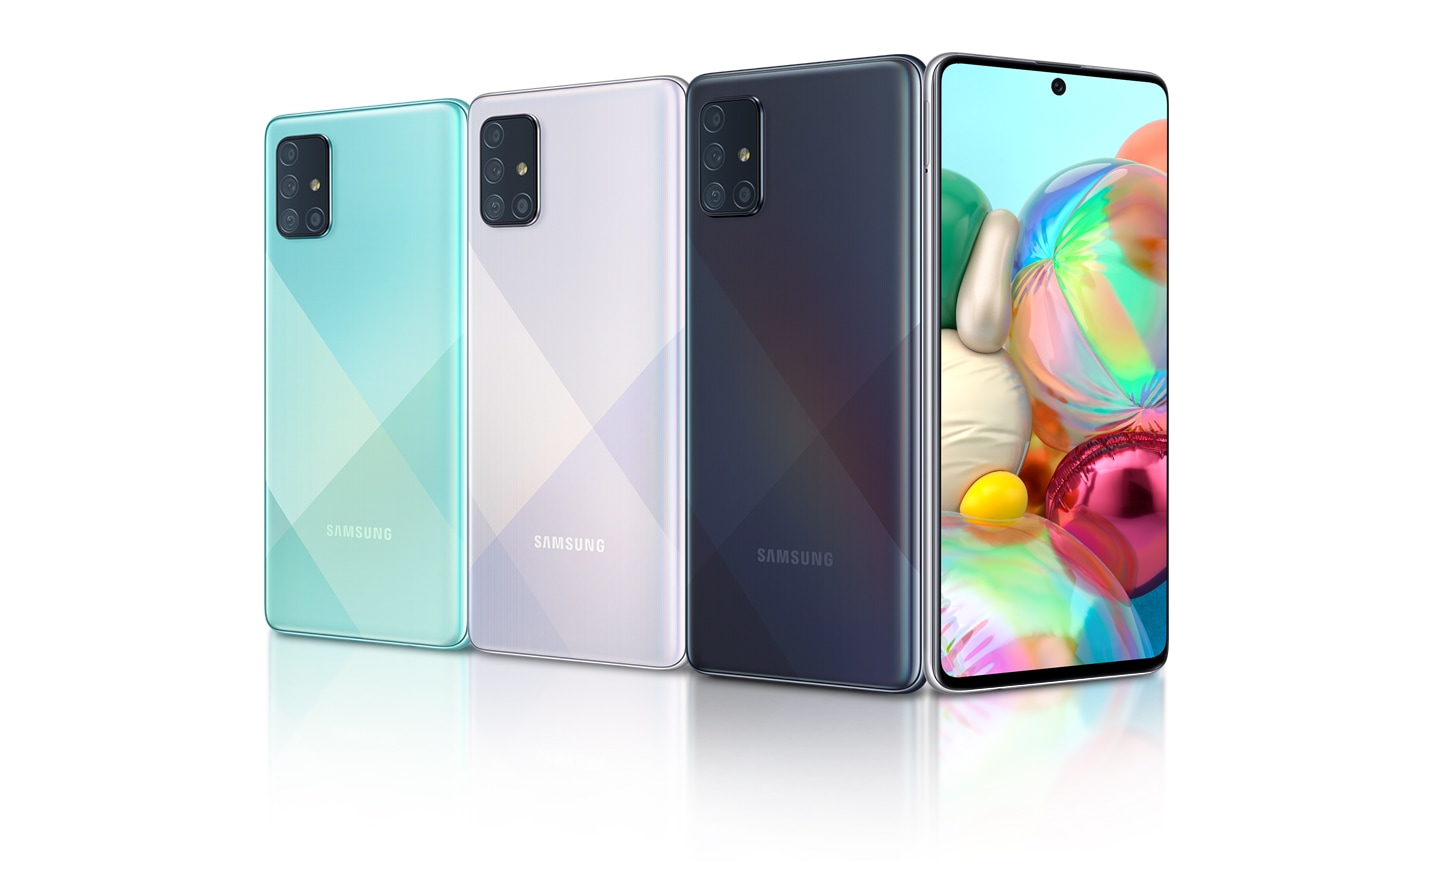 Samsung Galaxy A71 and Galaxy A51 pre-orders start this February 3 with free Protection Plus 4